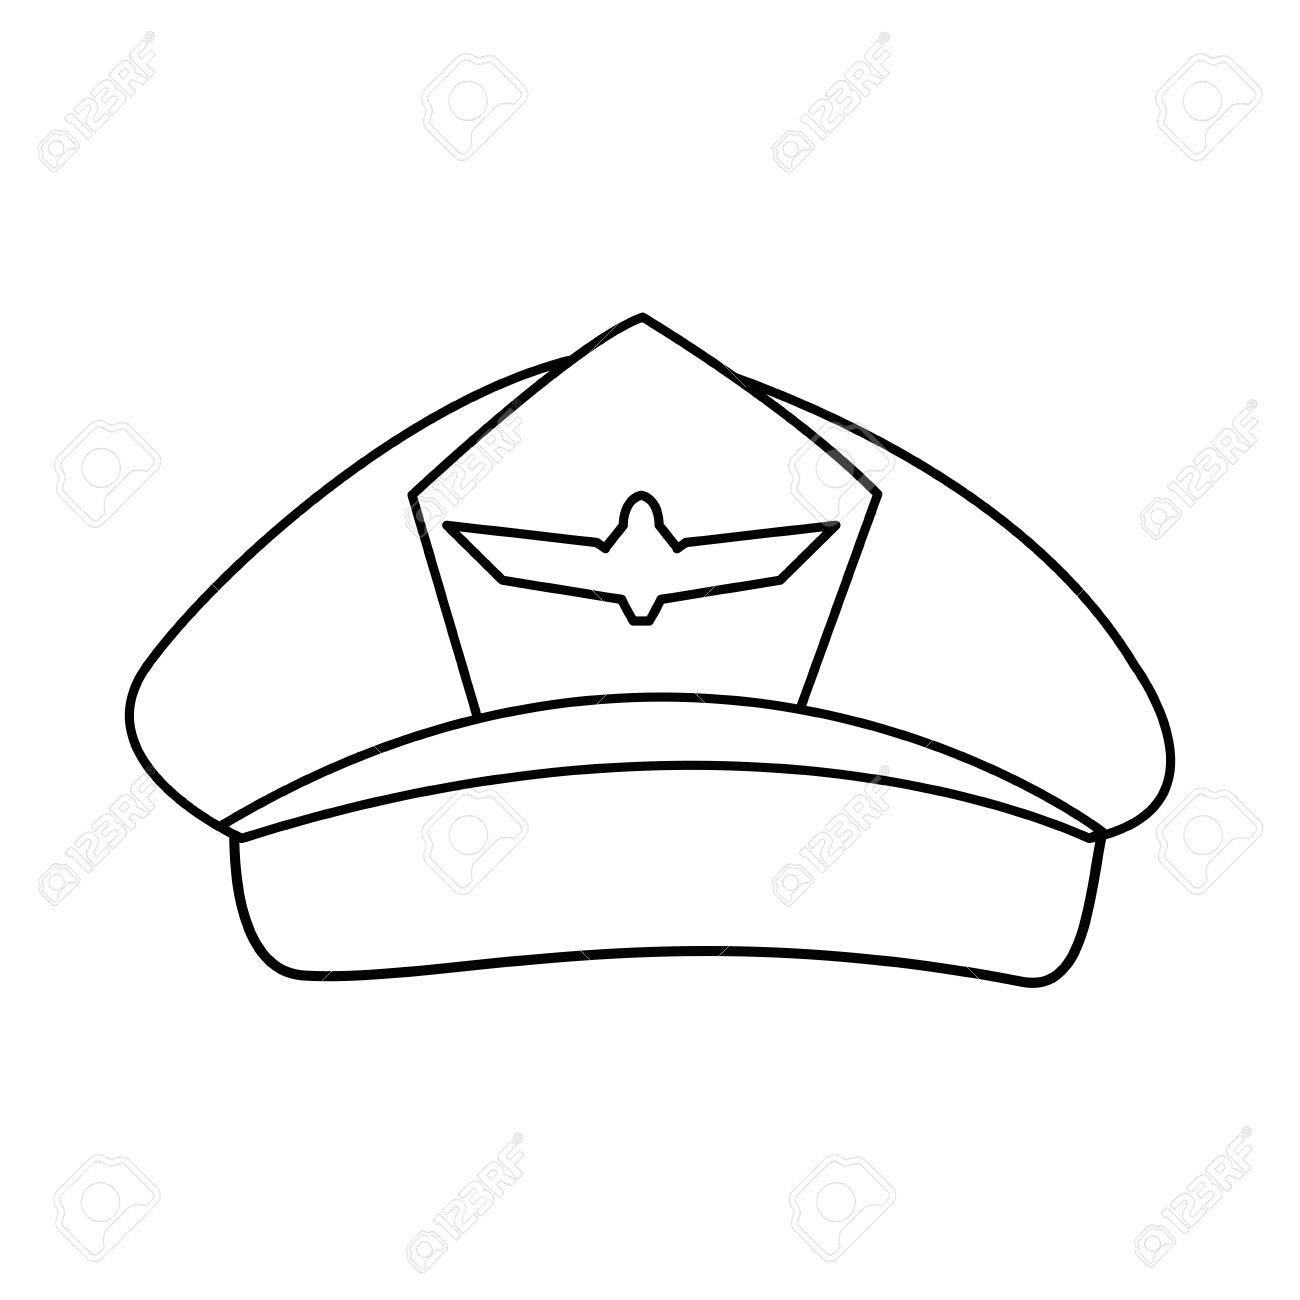 Airline Pilots Hat Aviator Cap With Insignia Vector Illustration Stock